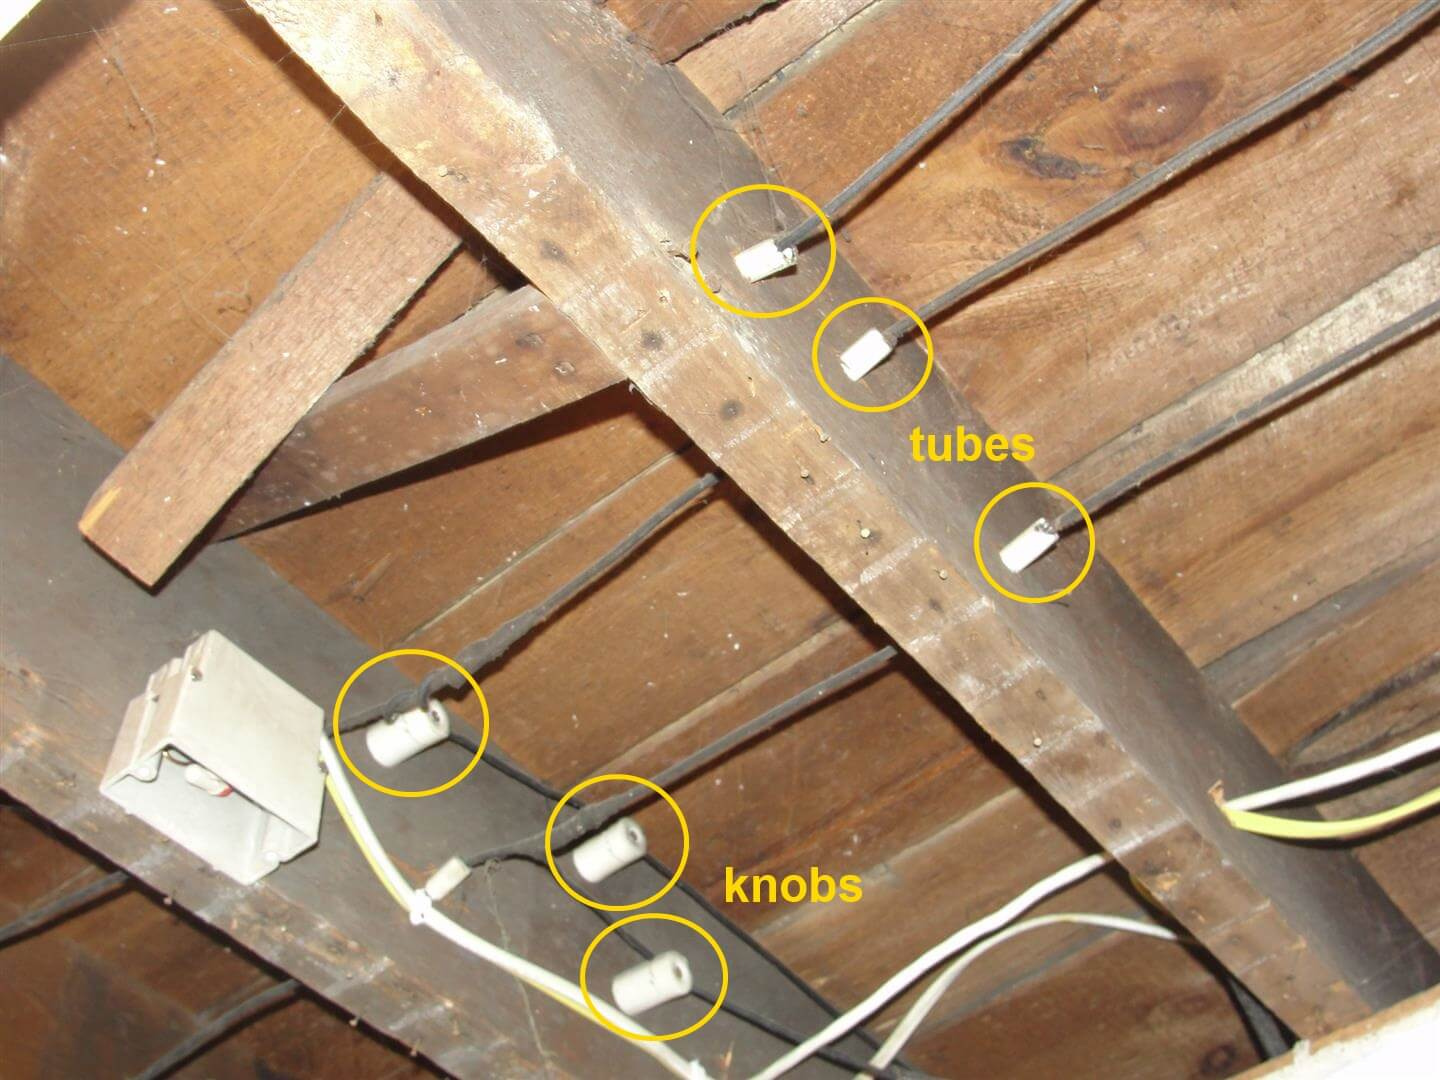 Home Inspection Checklist Interior Wiring In Basement At Best The Remaining Knob And Tube Is Good Condition Most Of It Has Been Replaced Be Aware However That Many Insurance Companies